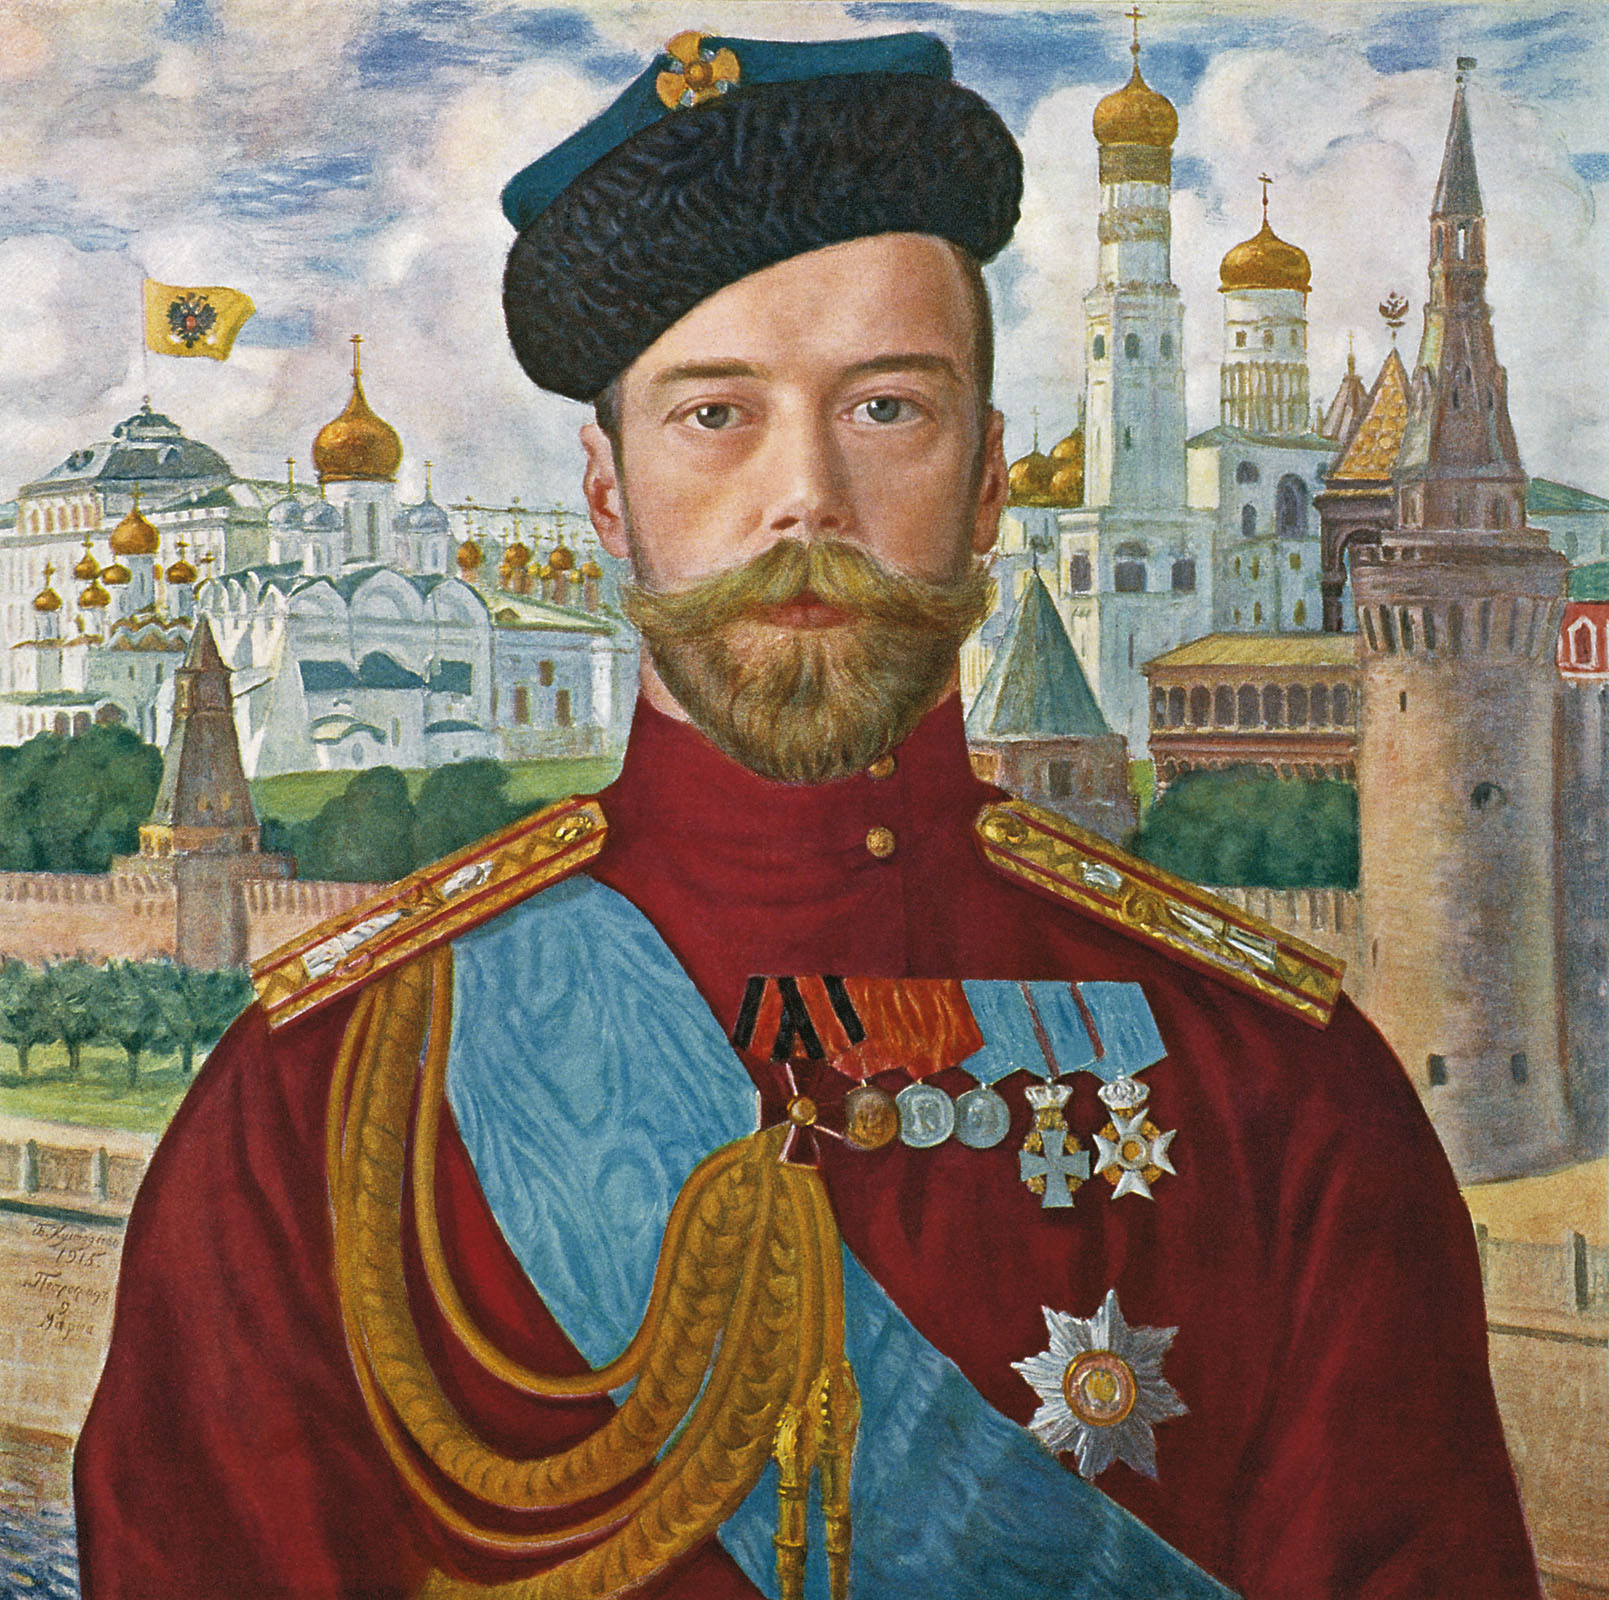 https://i0.wp.com/upload.wikimedia.org/wikipedia/commons/f/fa/Tsar_nikolai.jpg